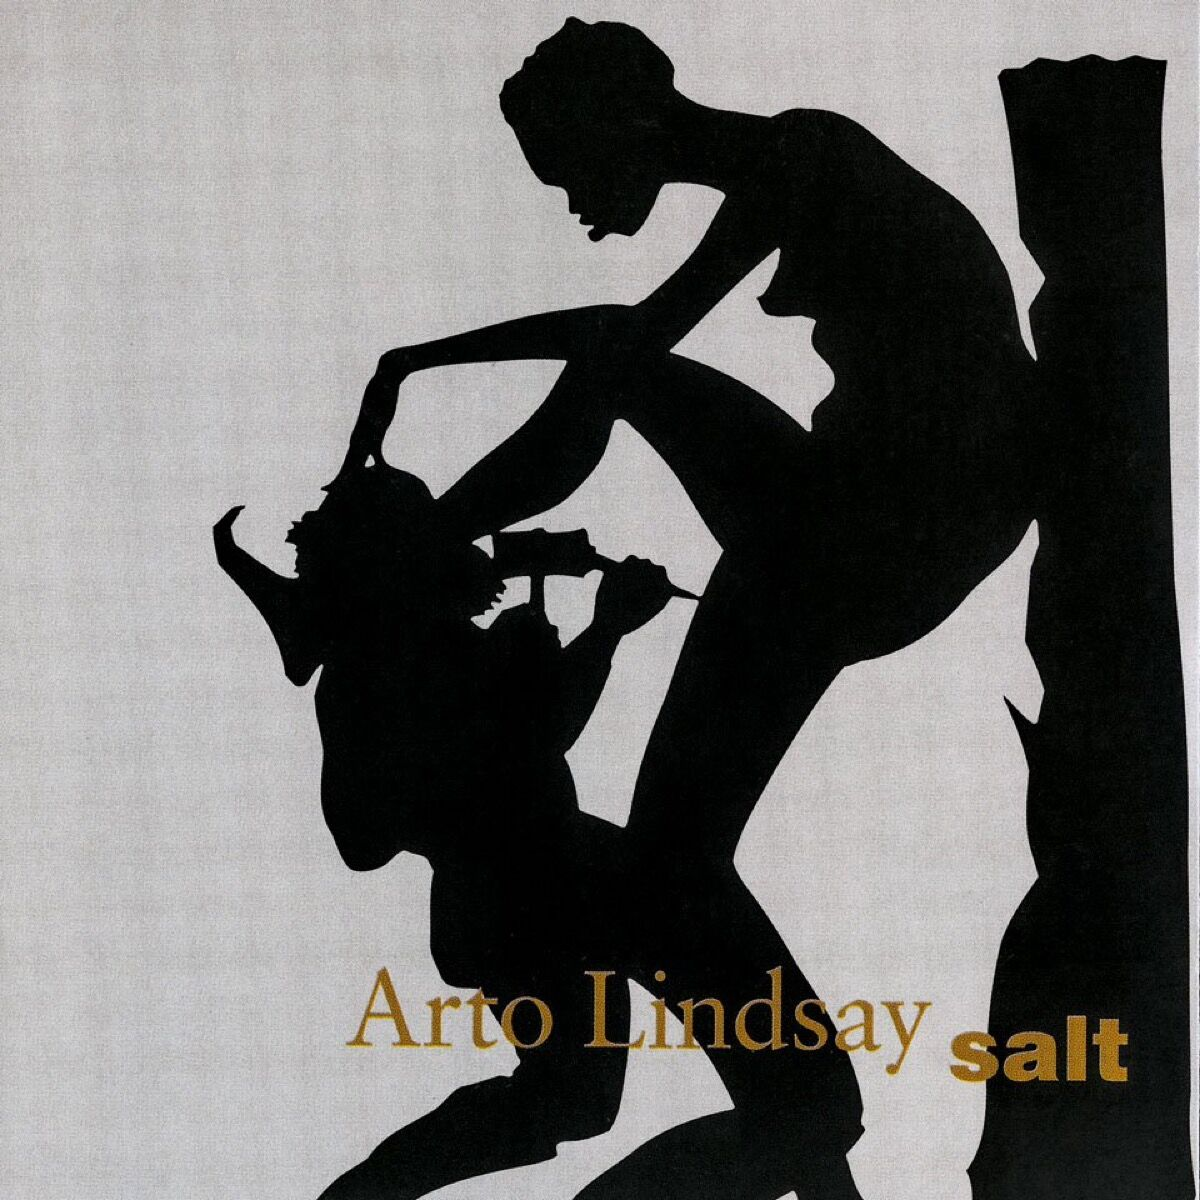 Kara Walker's cover for Salt by Arto Lindsay, 2004. Courtesy of TASCHEN.